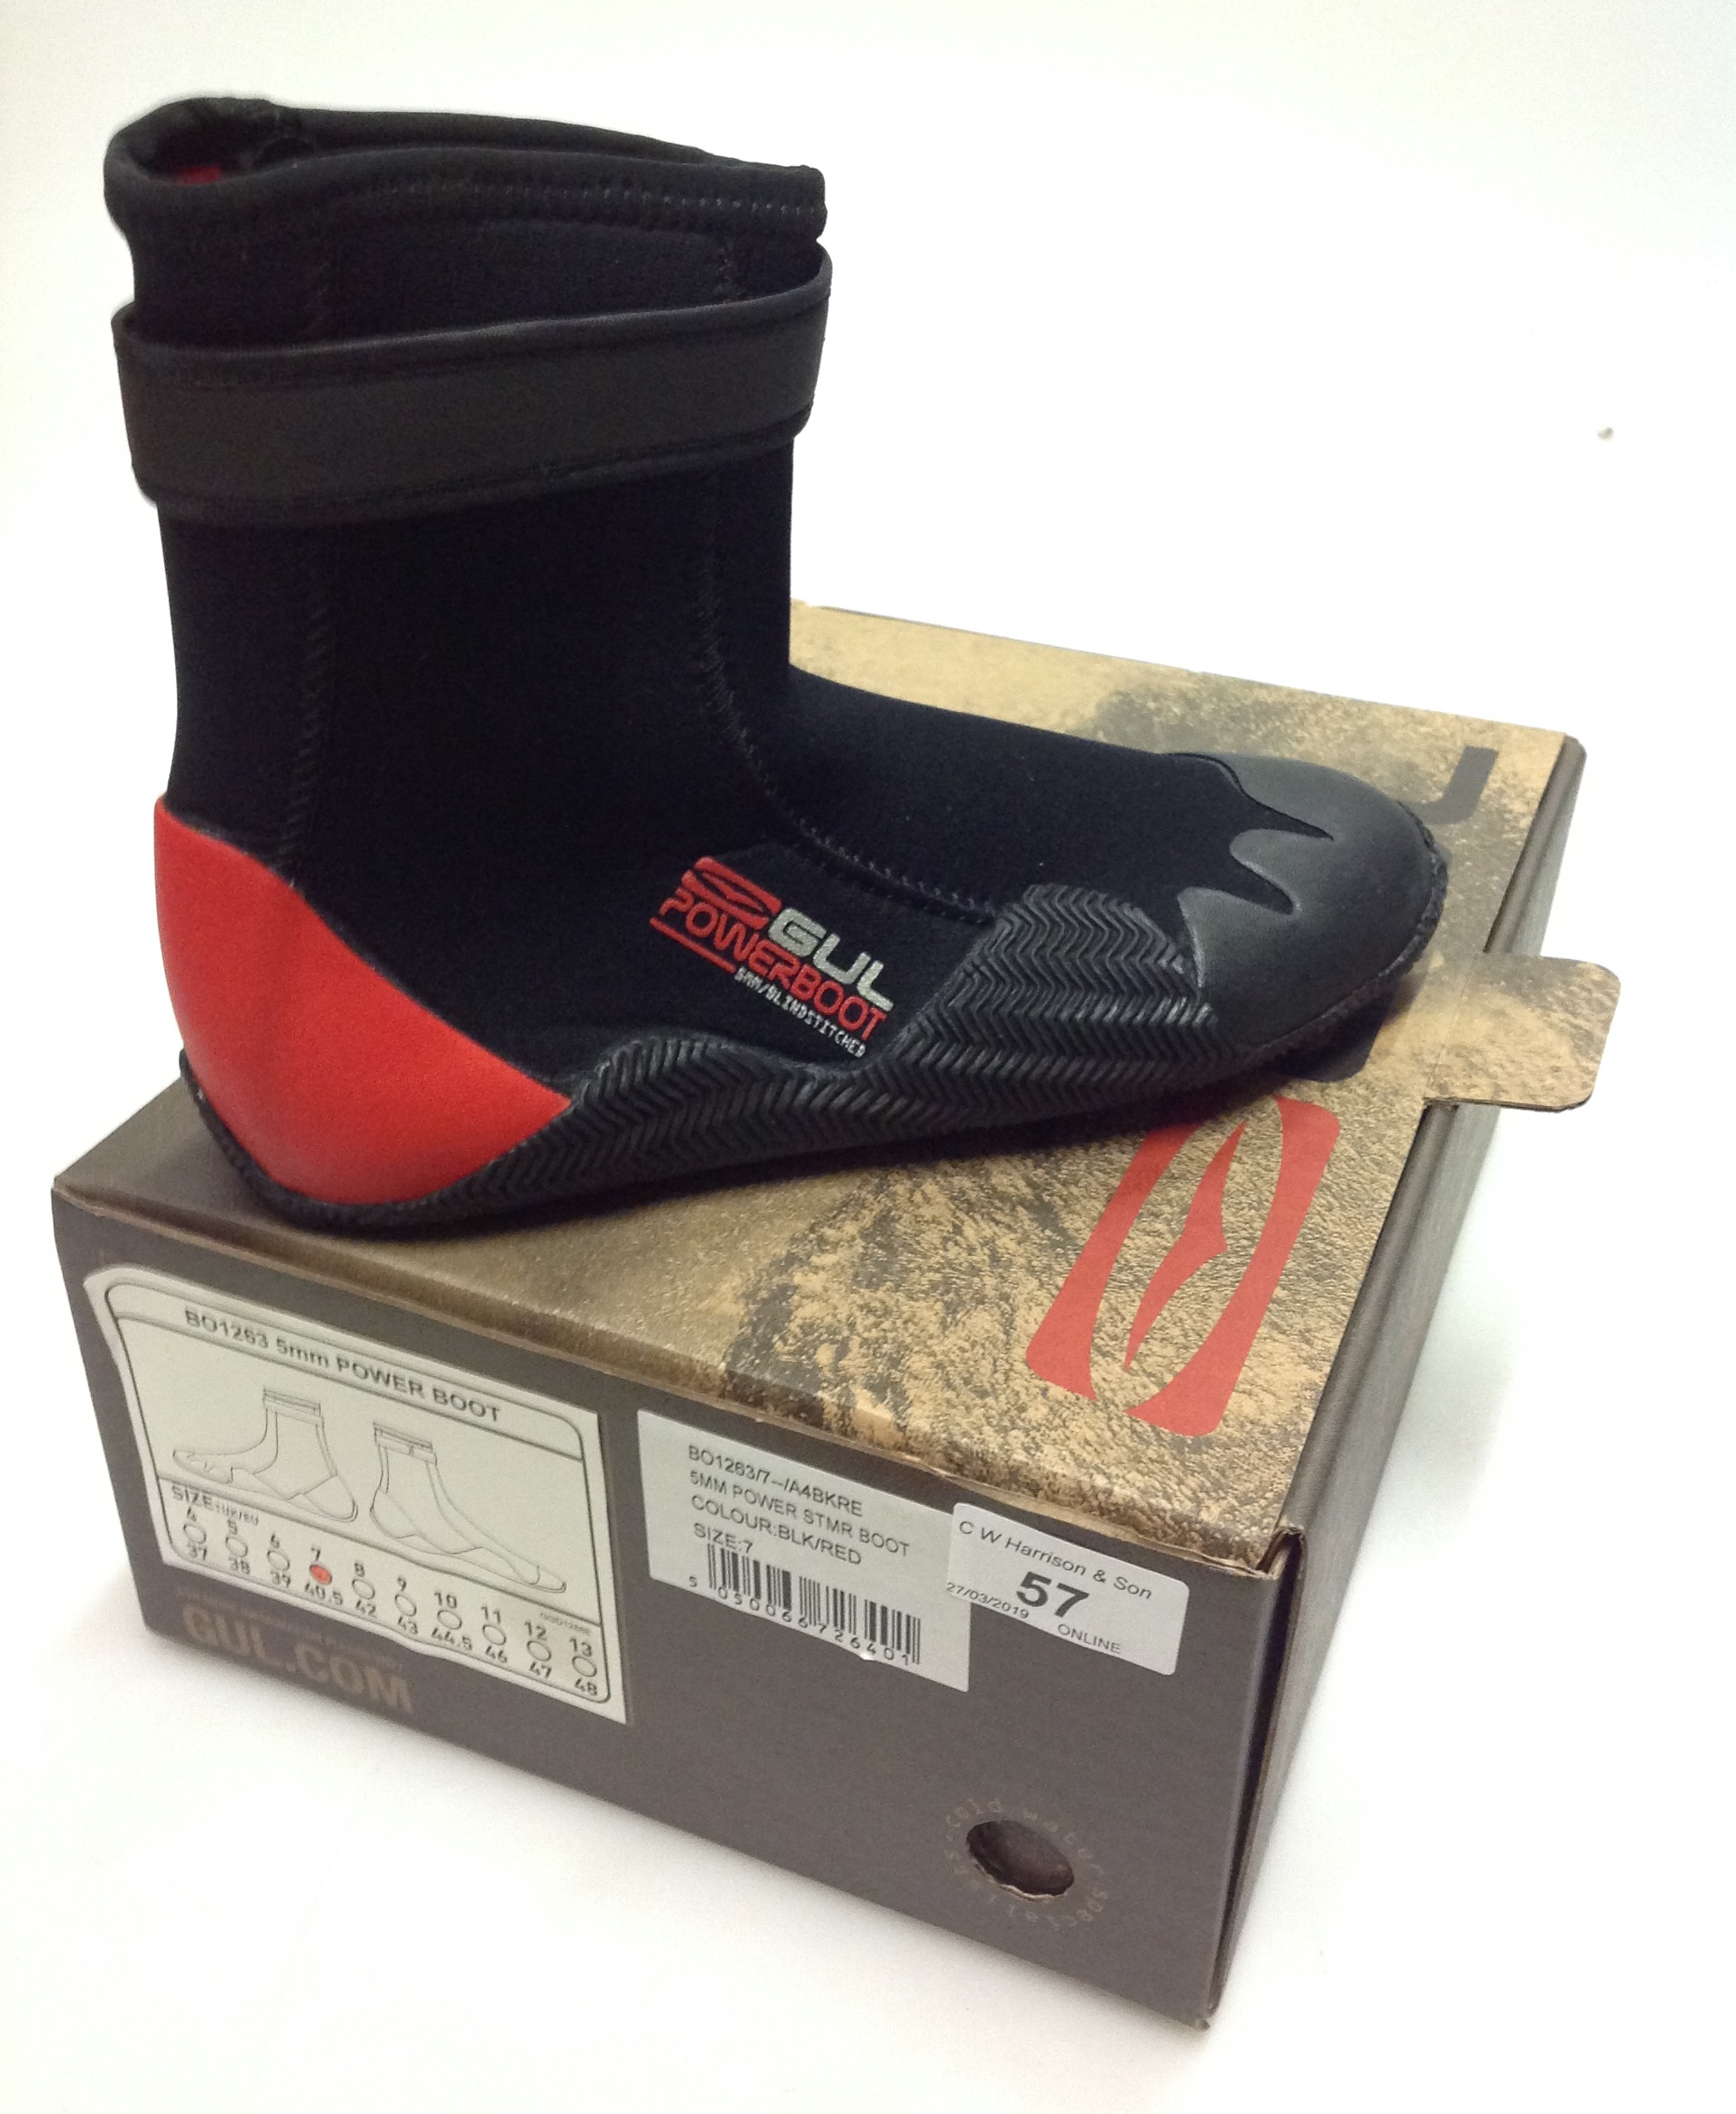 Lot 57 - Pair of Gul 5MM Power STMR boots red and black- size 7